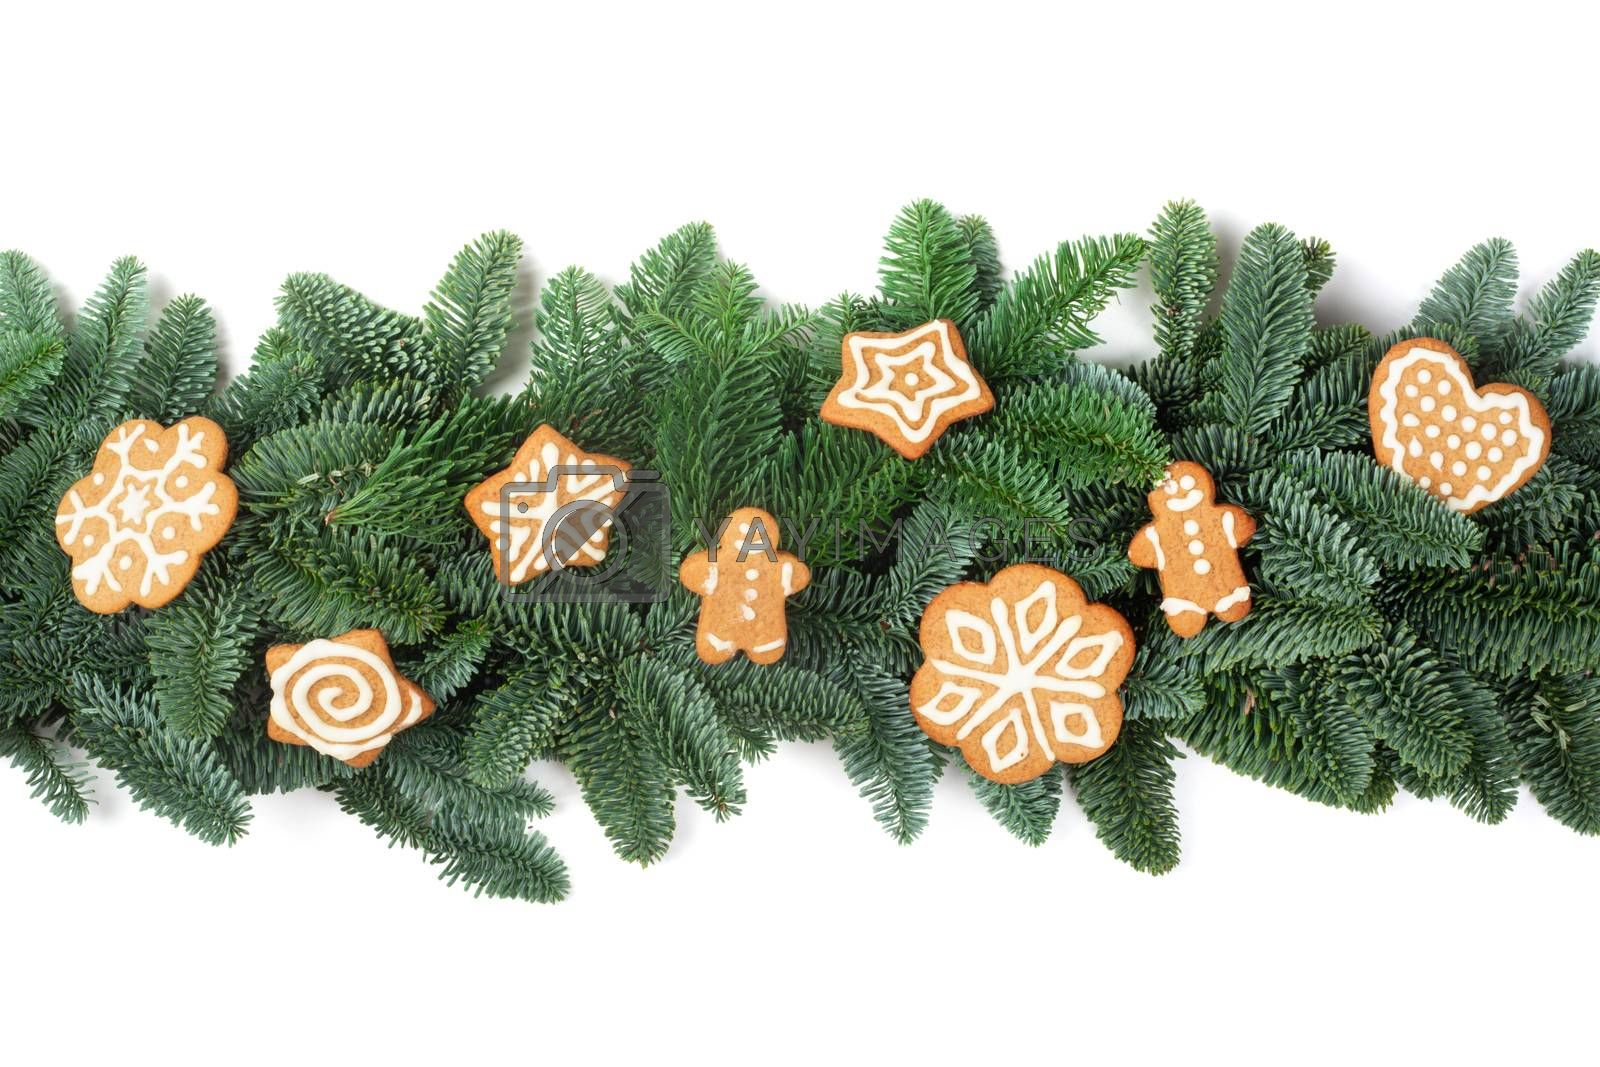 Christmas Border frame of natural noble fir tree branches and gingerbread cookies isolated on white background